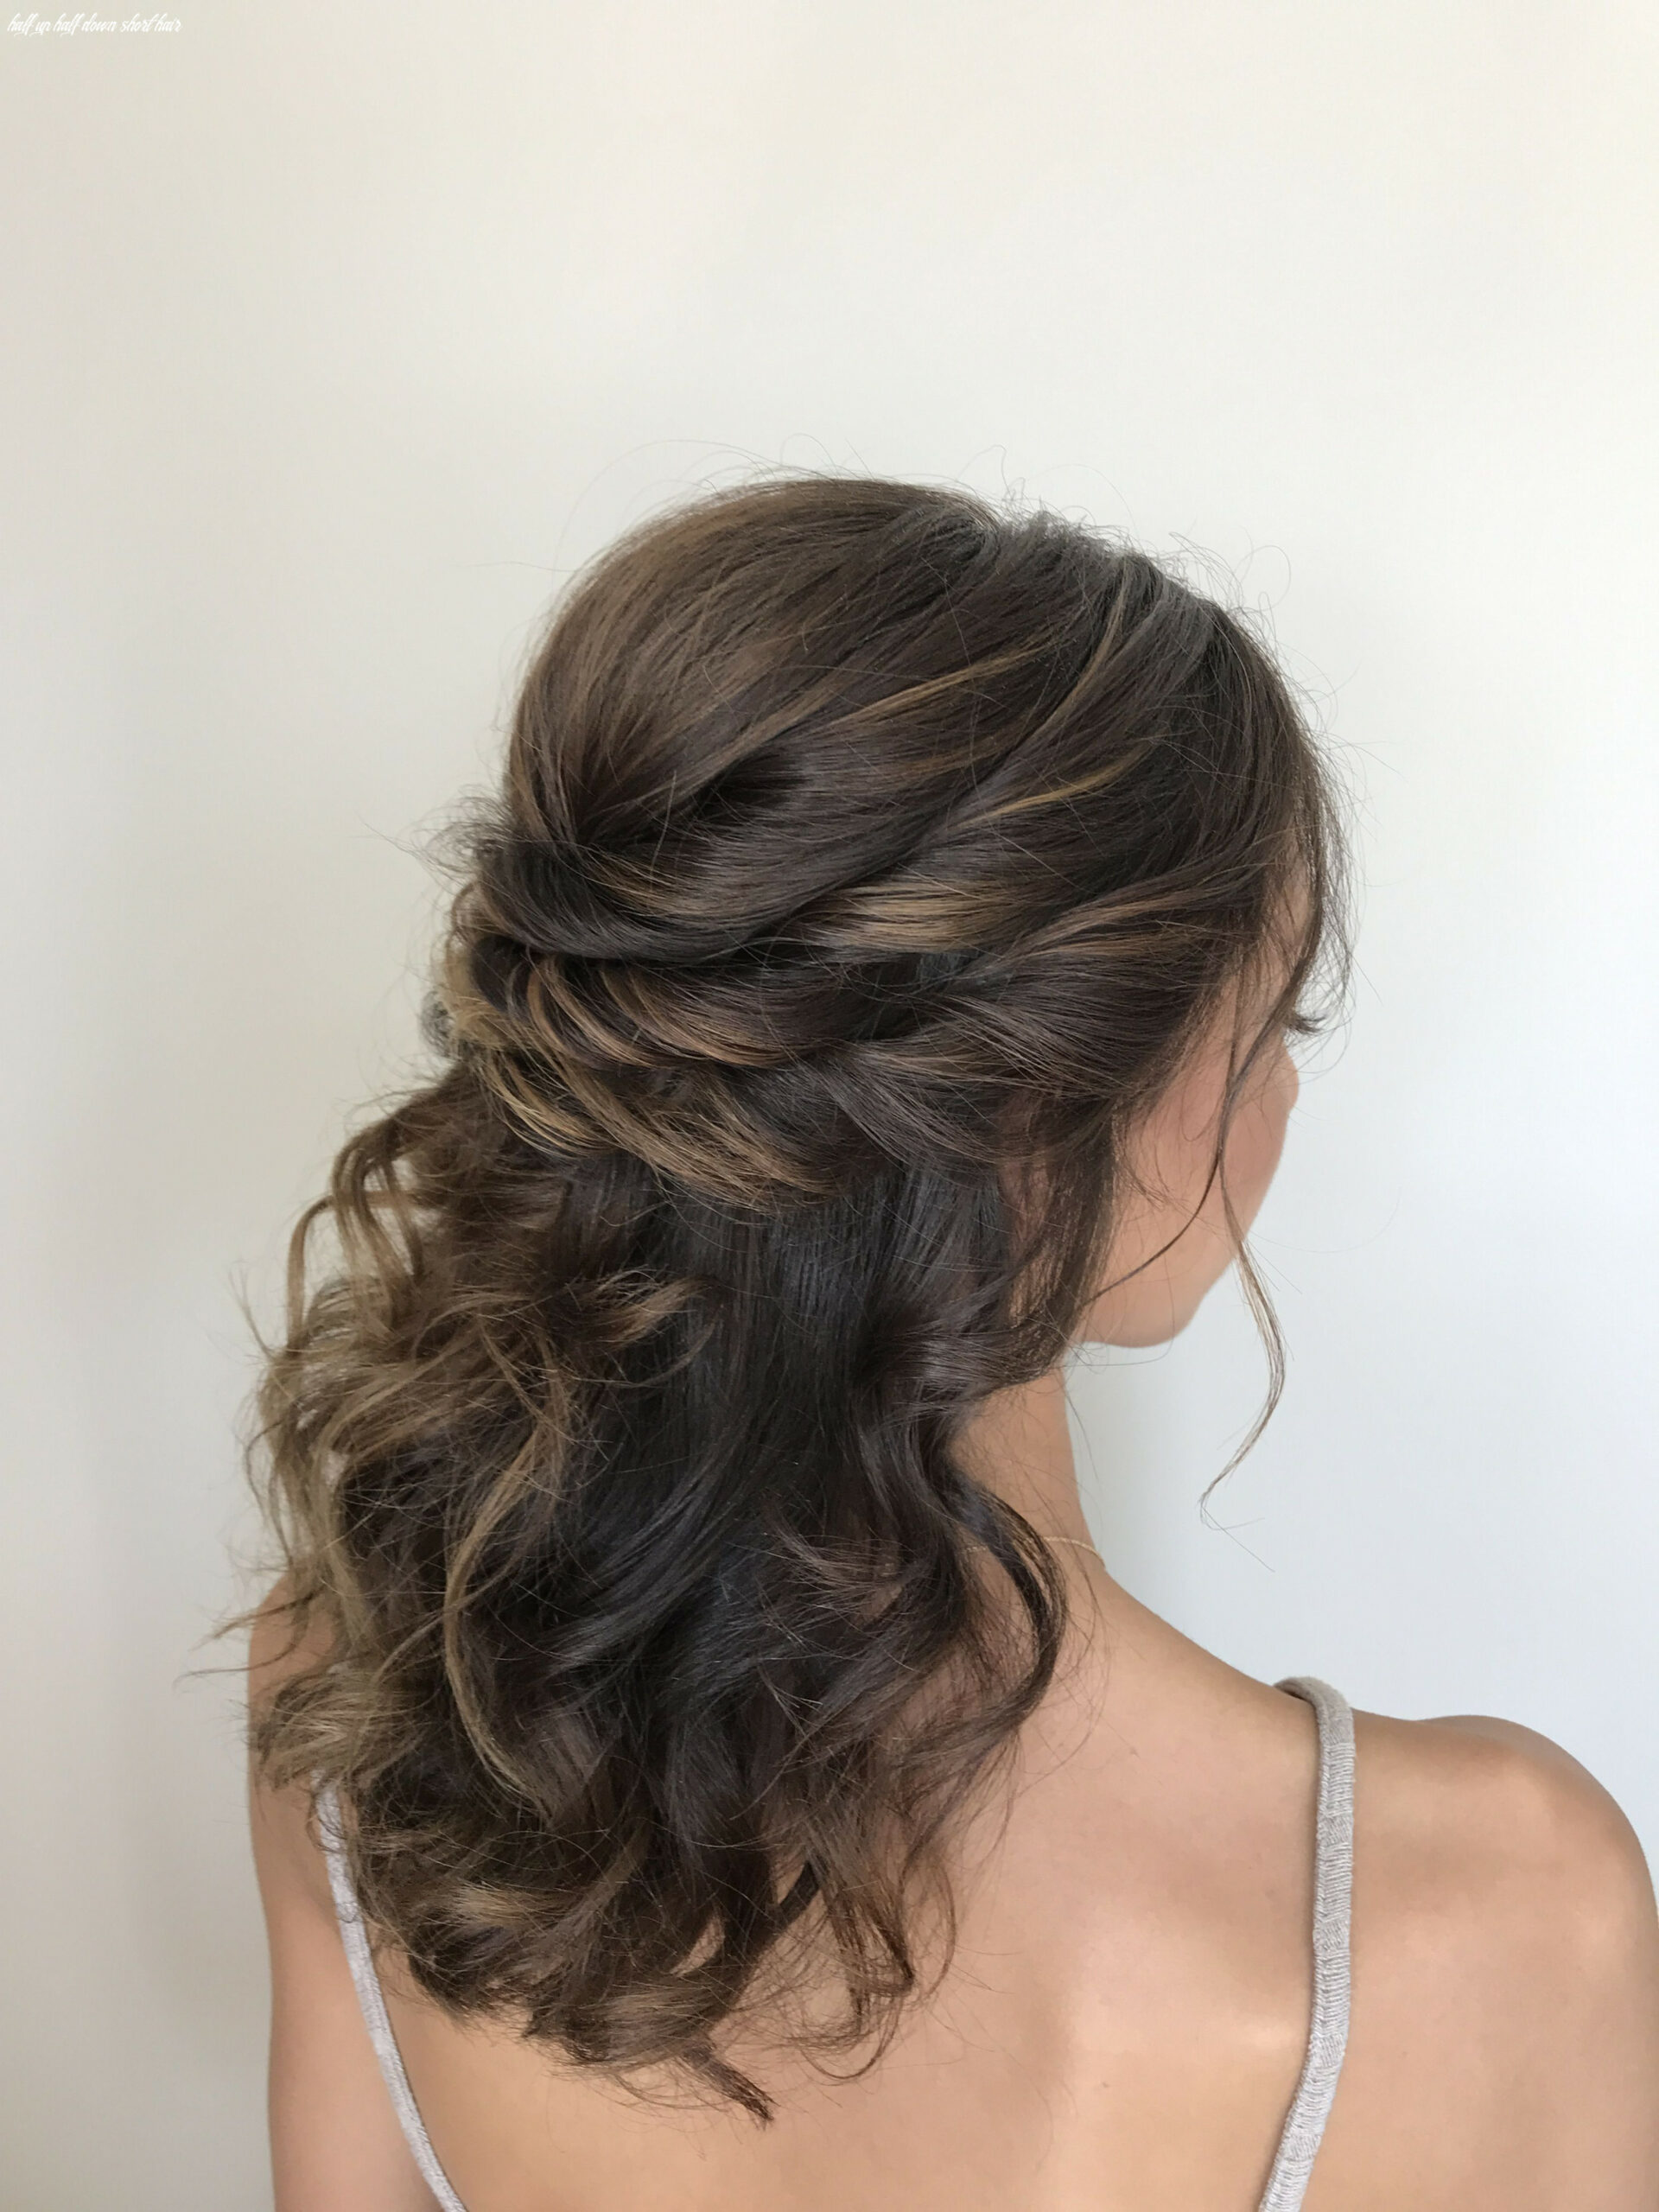 Bridal hair half up half down (With images) | Wedding hairstyles ...